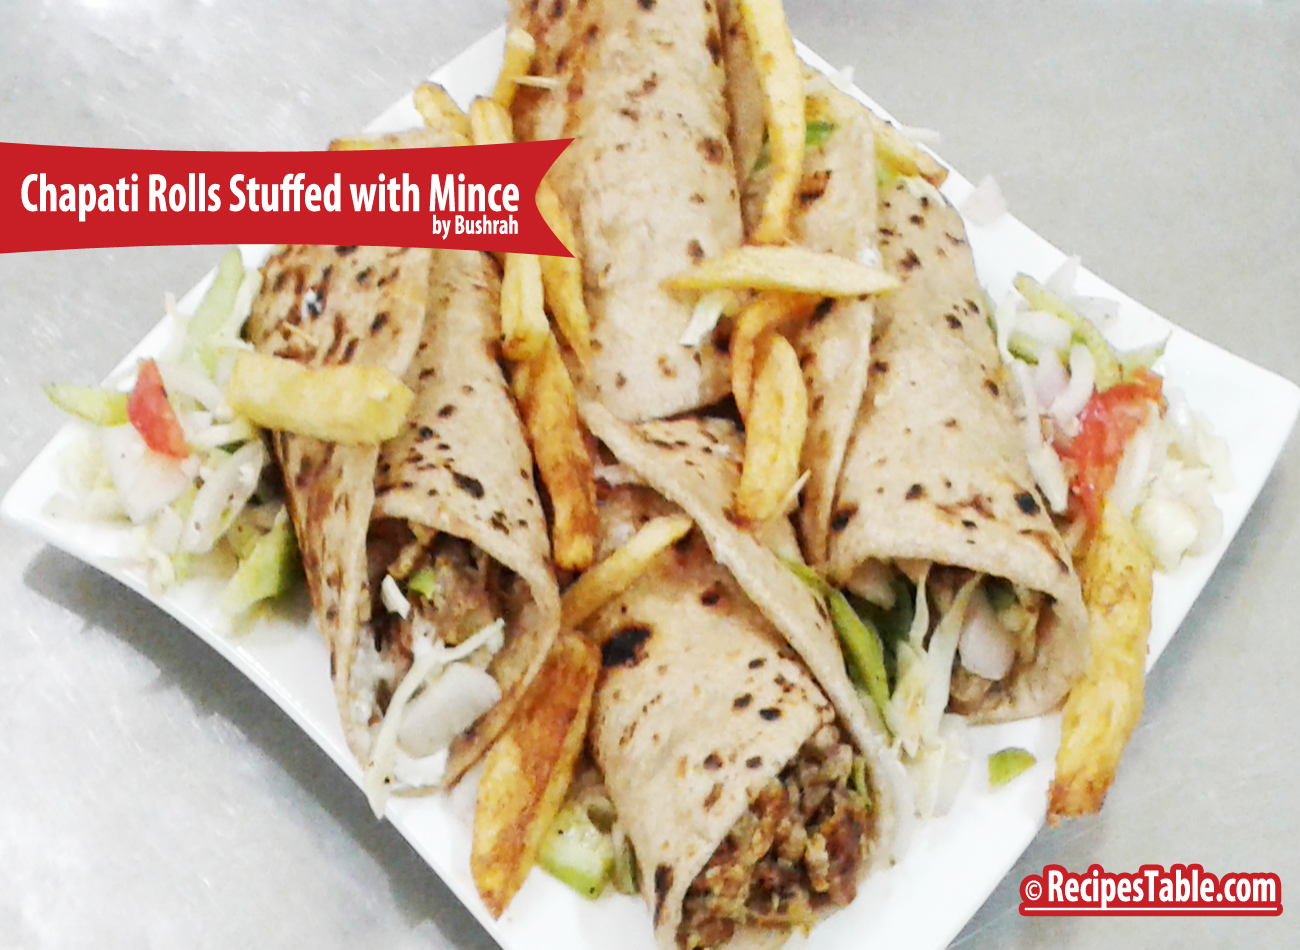 Recipe: Chapati Rolls Stuffed with Mince